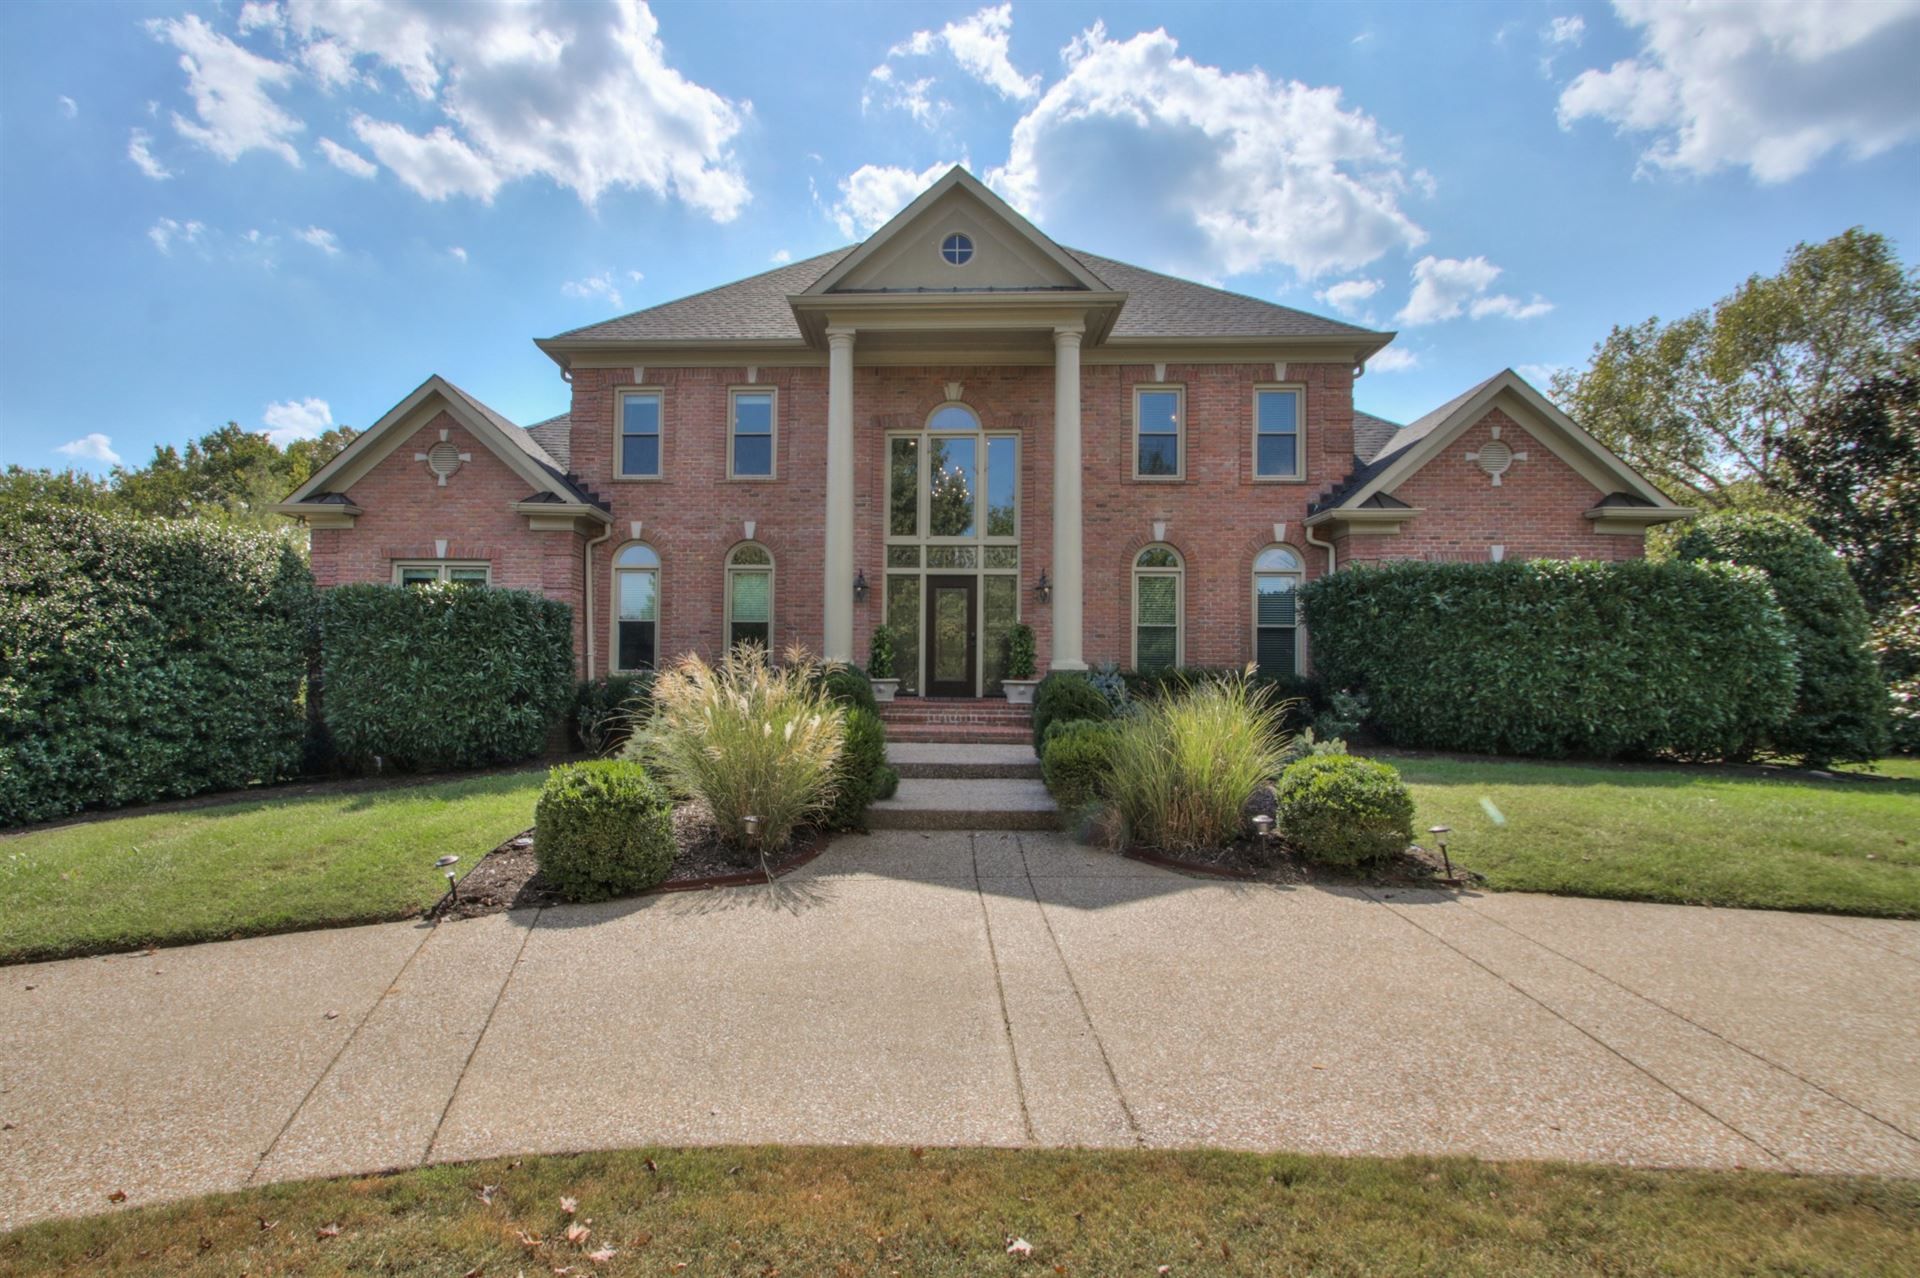 Photo of 5181 Remington Drive, Brentwood, TN 37027 (MLS # 2138135)